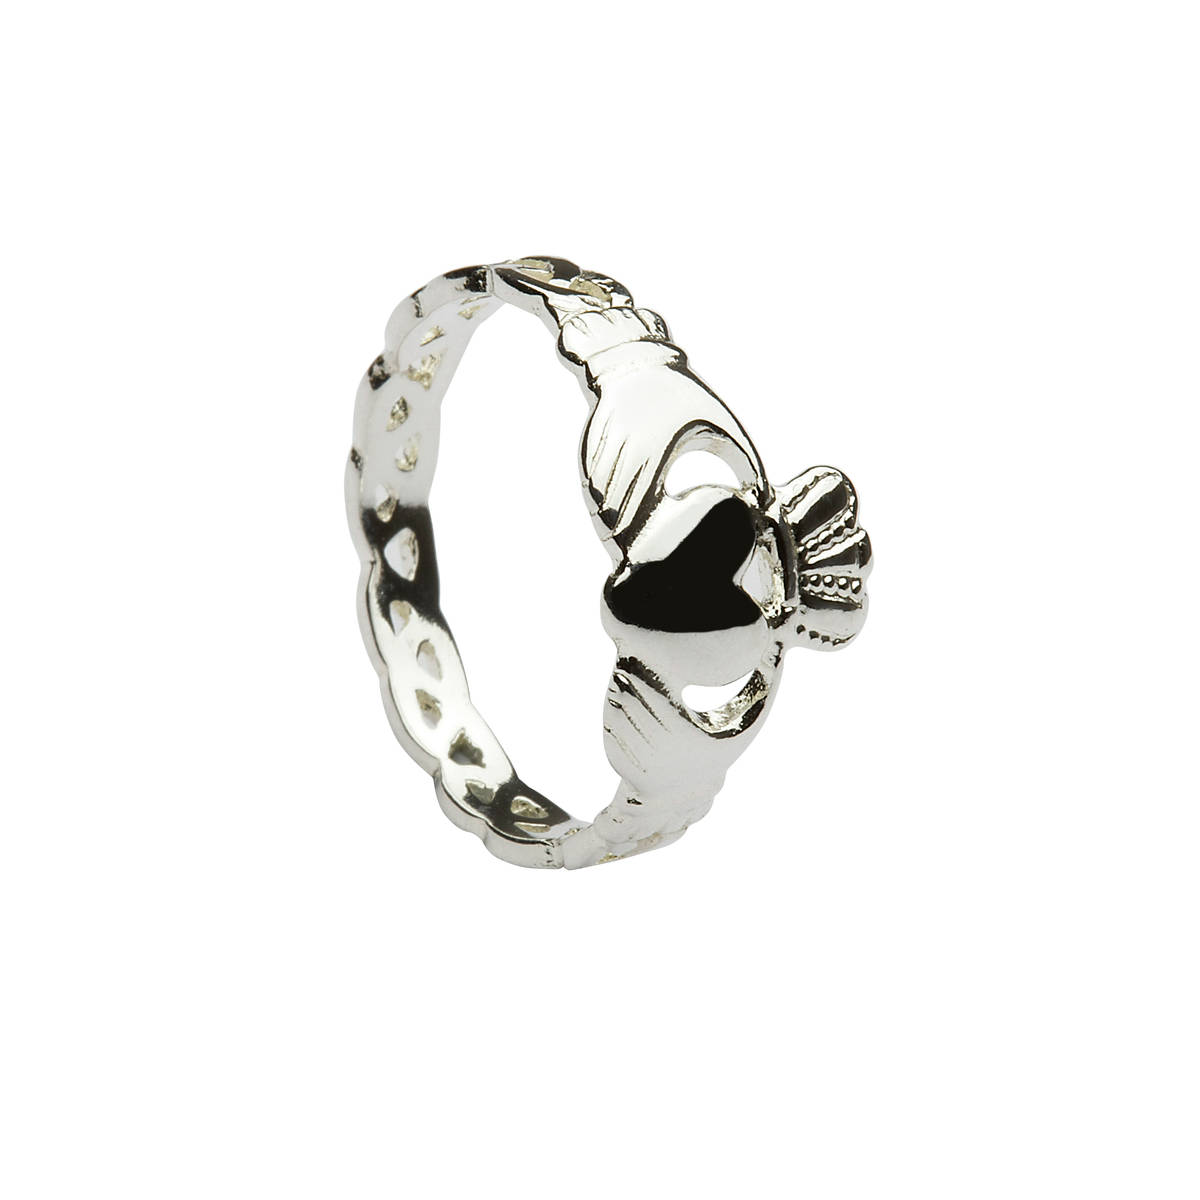 Silver ladies traditional classic claddagh ring with love knot shank